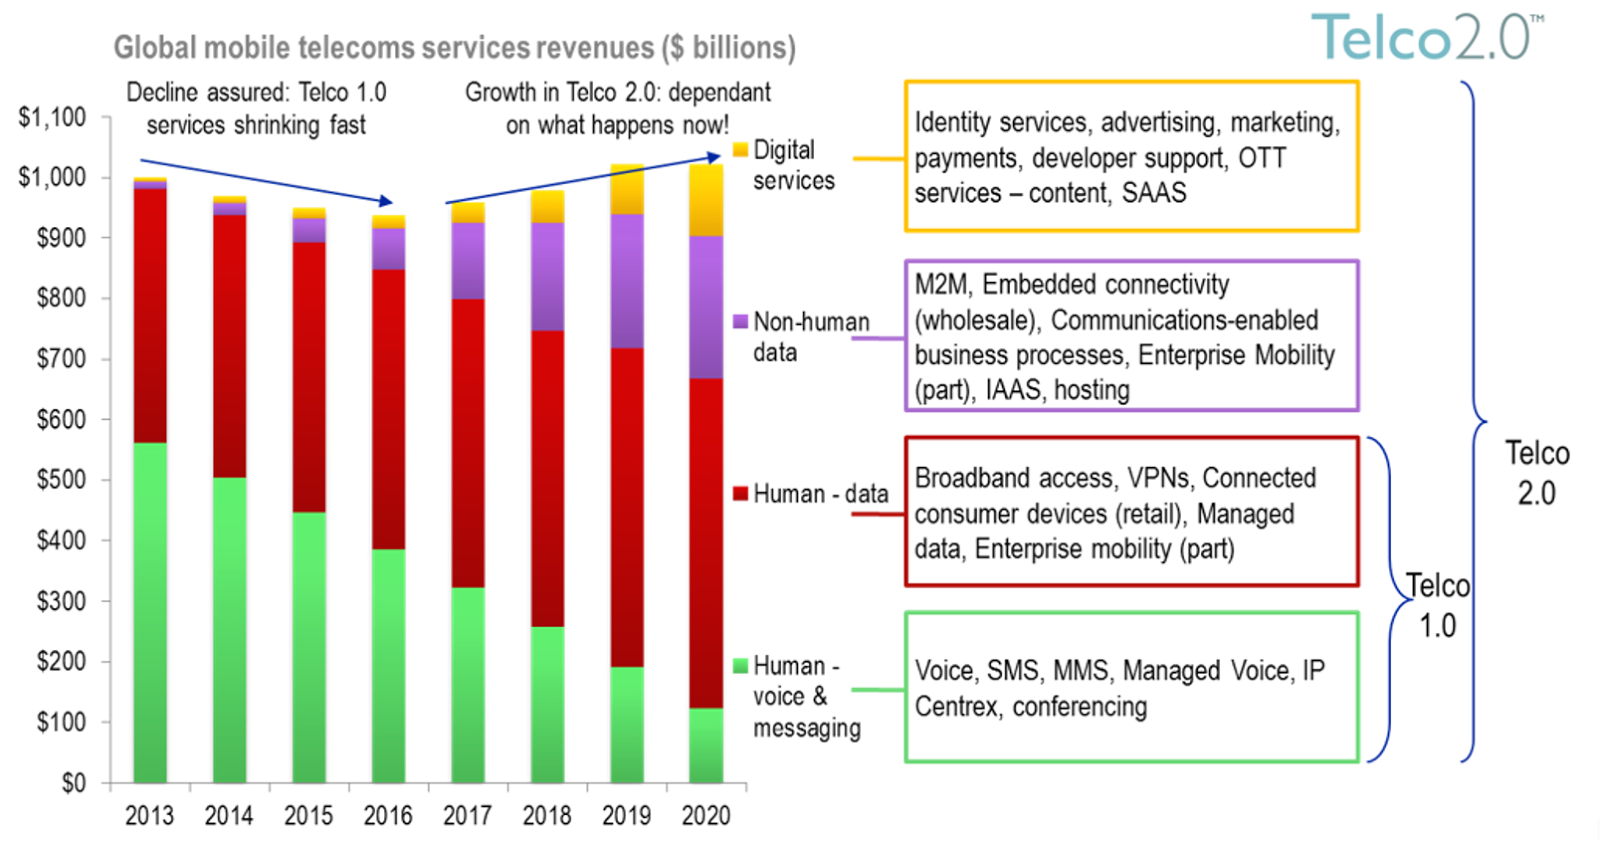 Global mobile telcoms revenue